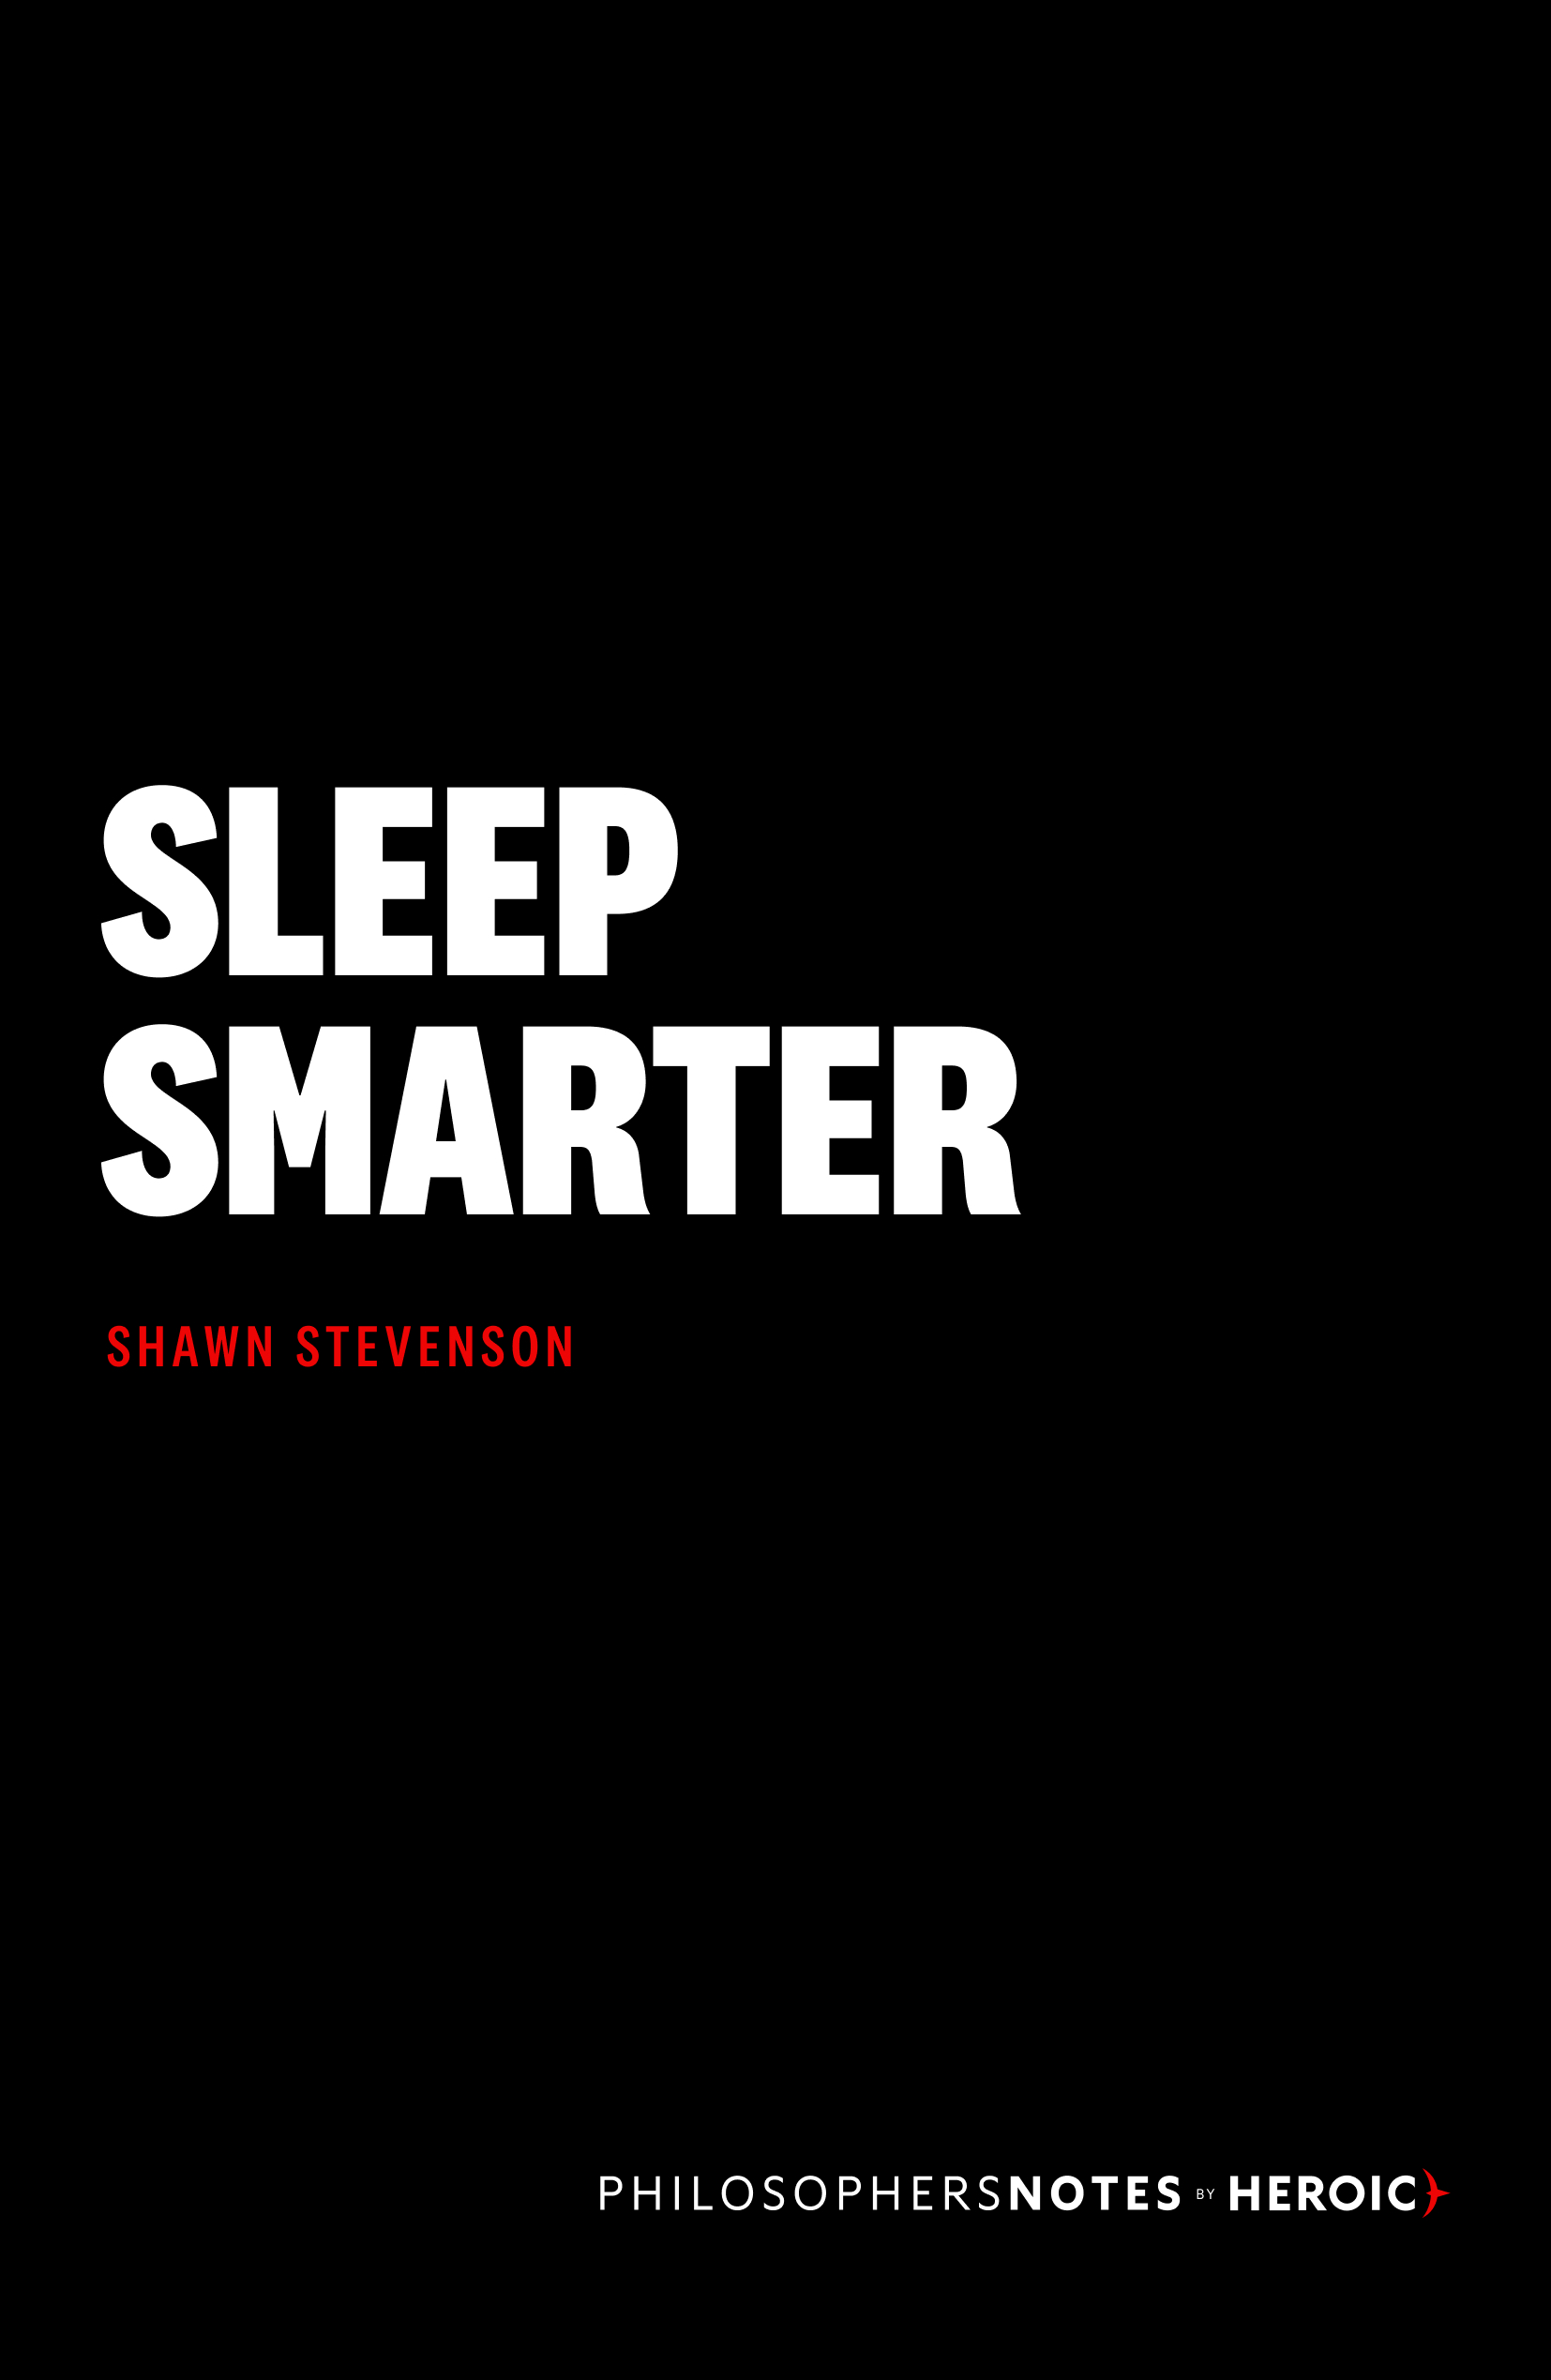 Sleep Smarter Book Cover